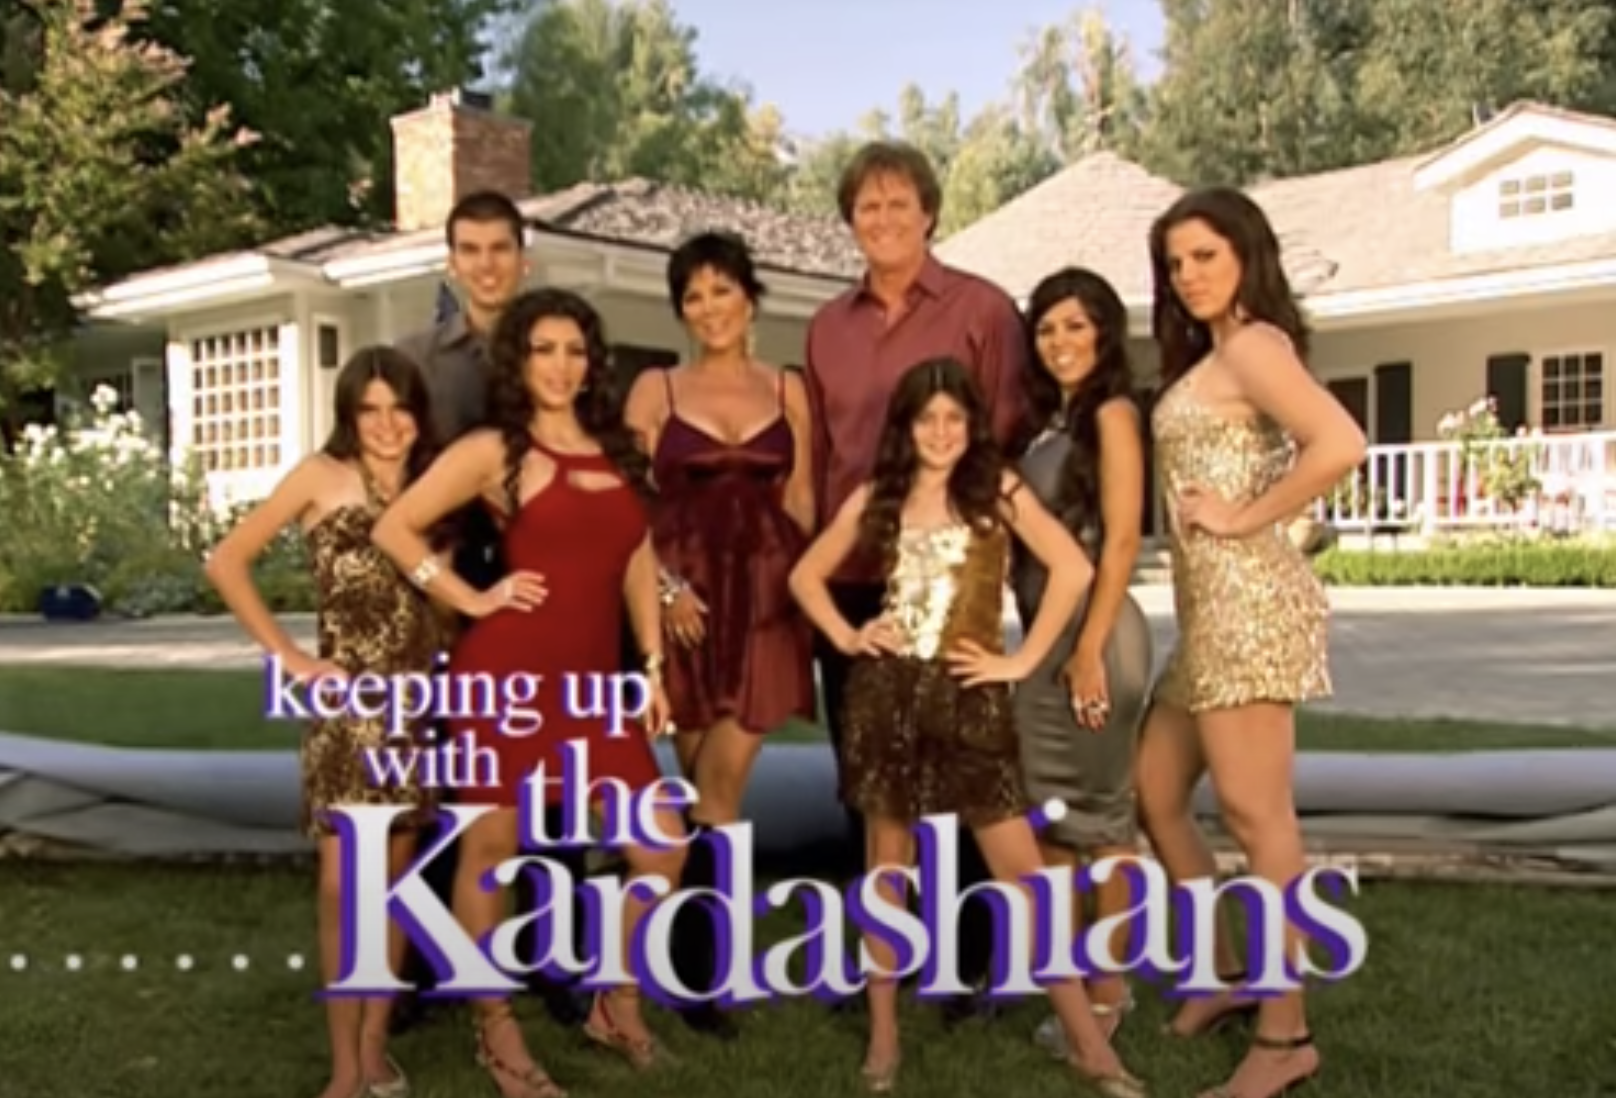 Opening from Season 1 of Keeping Up with the Kardashians